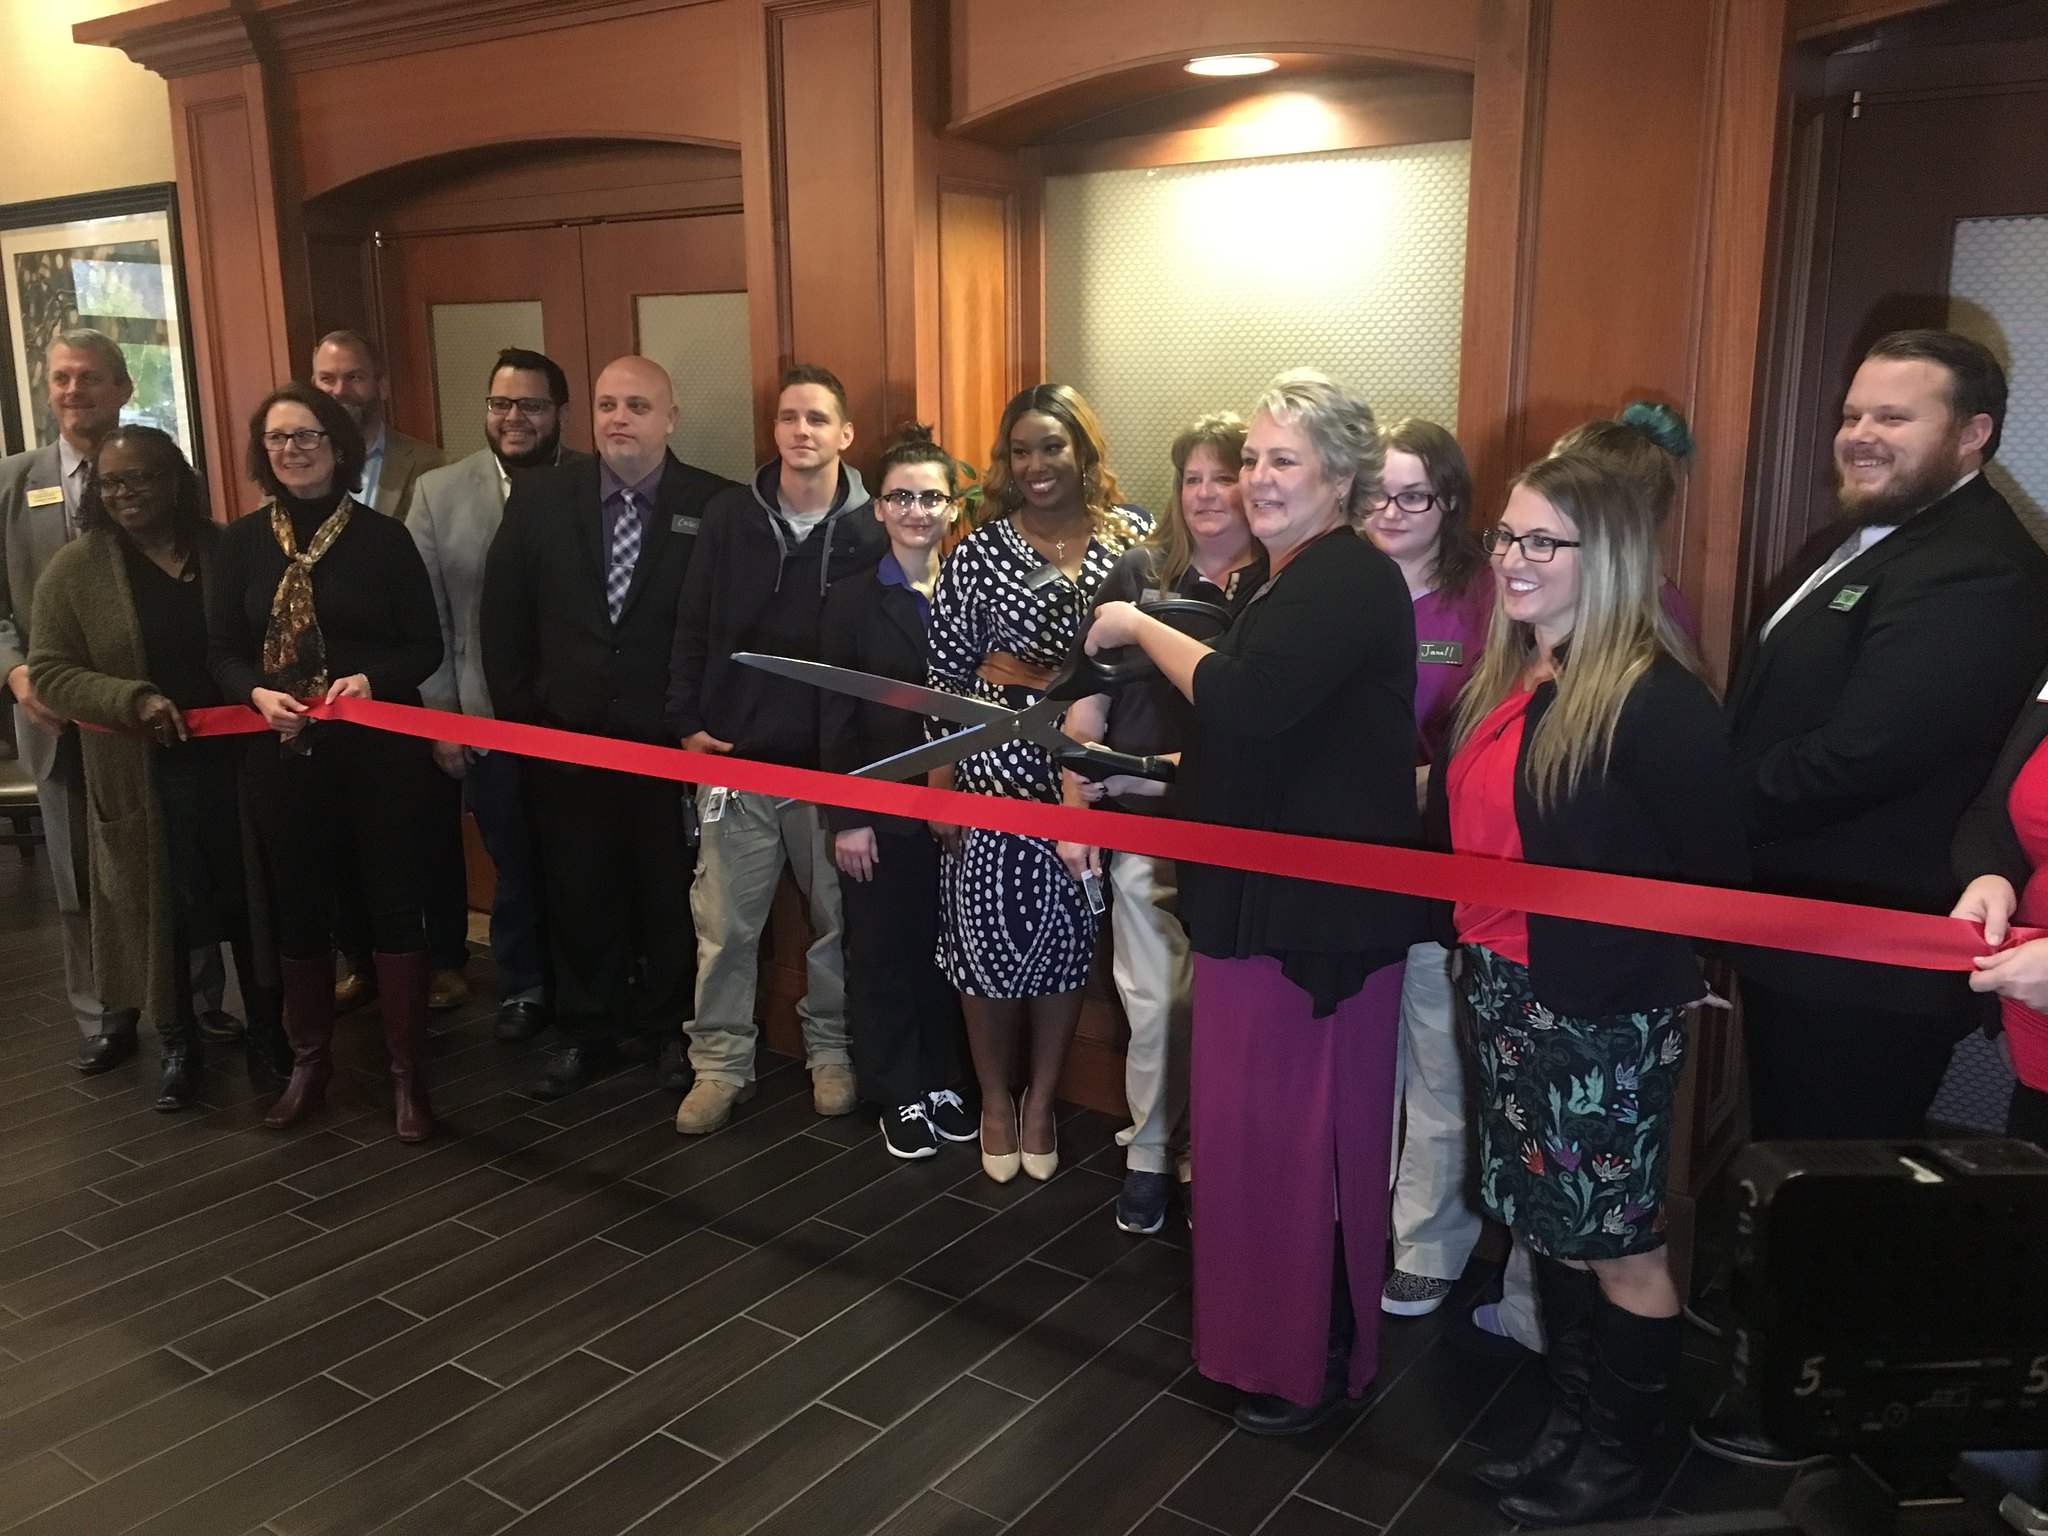 Hampton Inn Celebrates Remodel with Grand Re-Opening